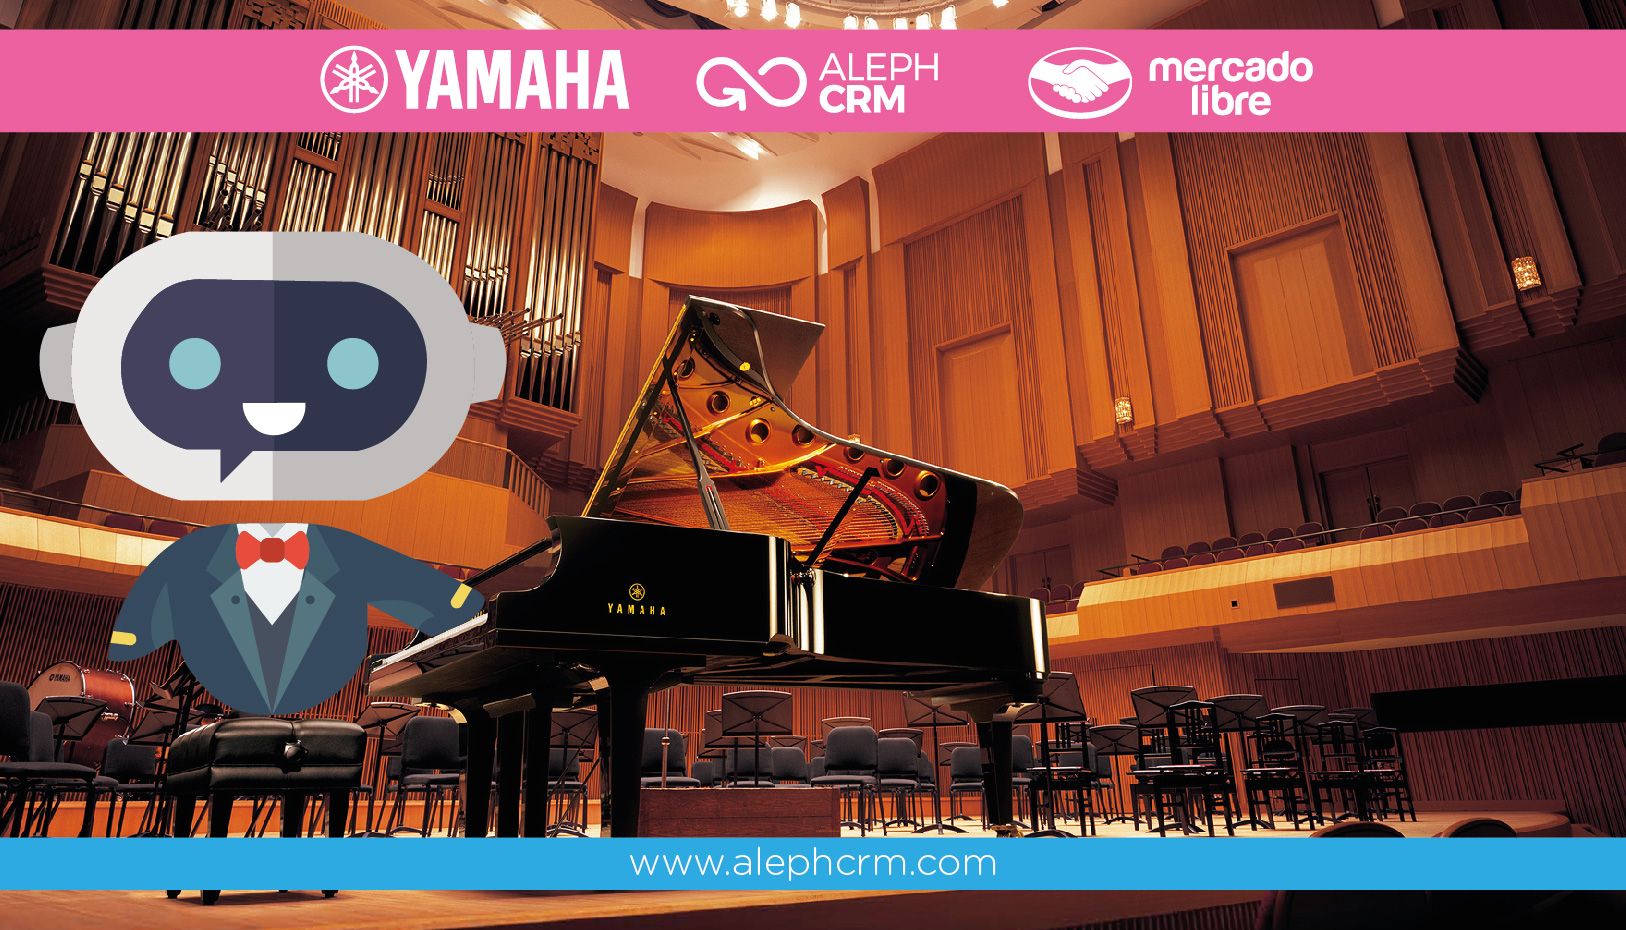 Yamaha and the e-commerce symphony reach the musical instrument industry